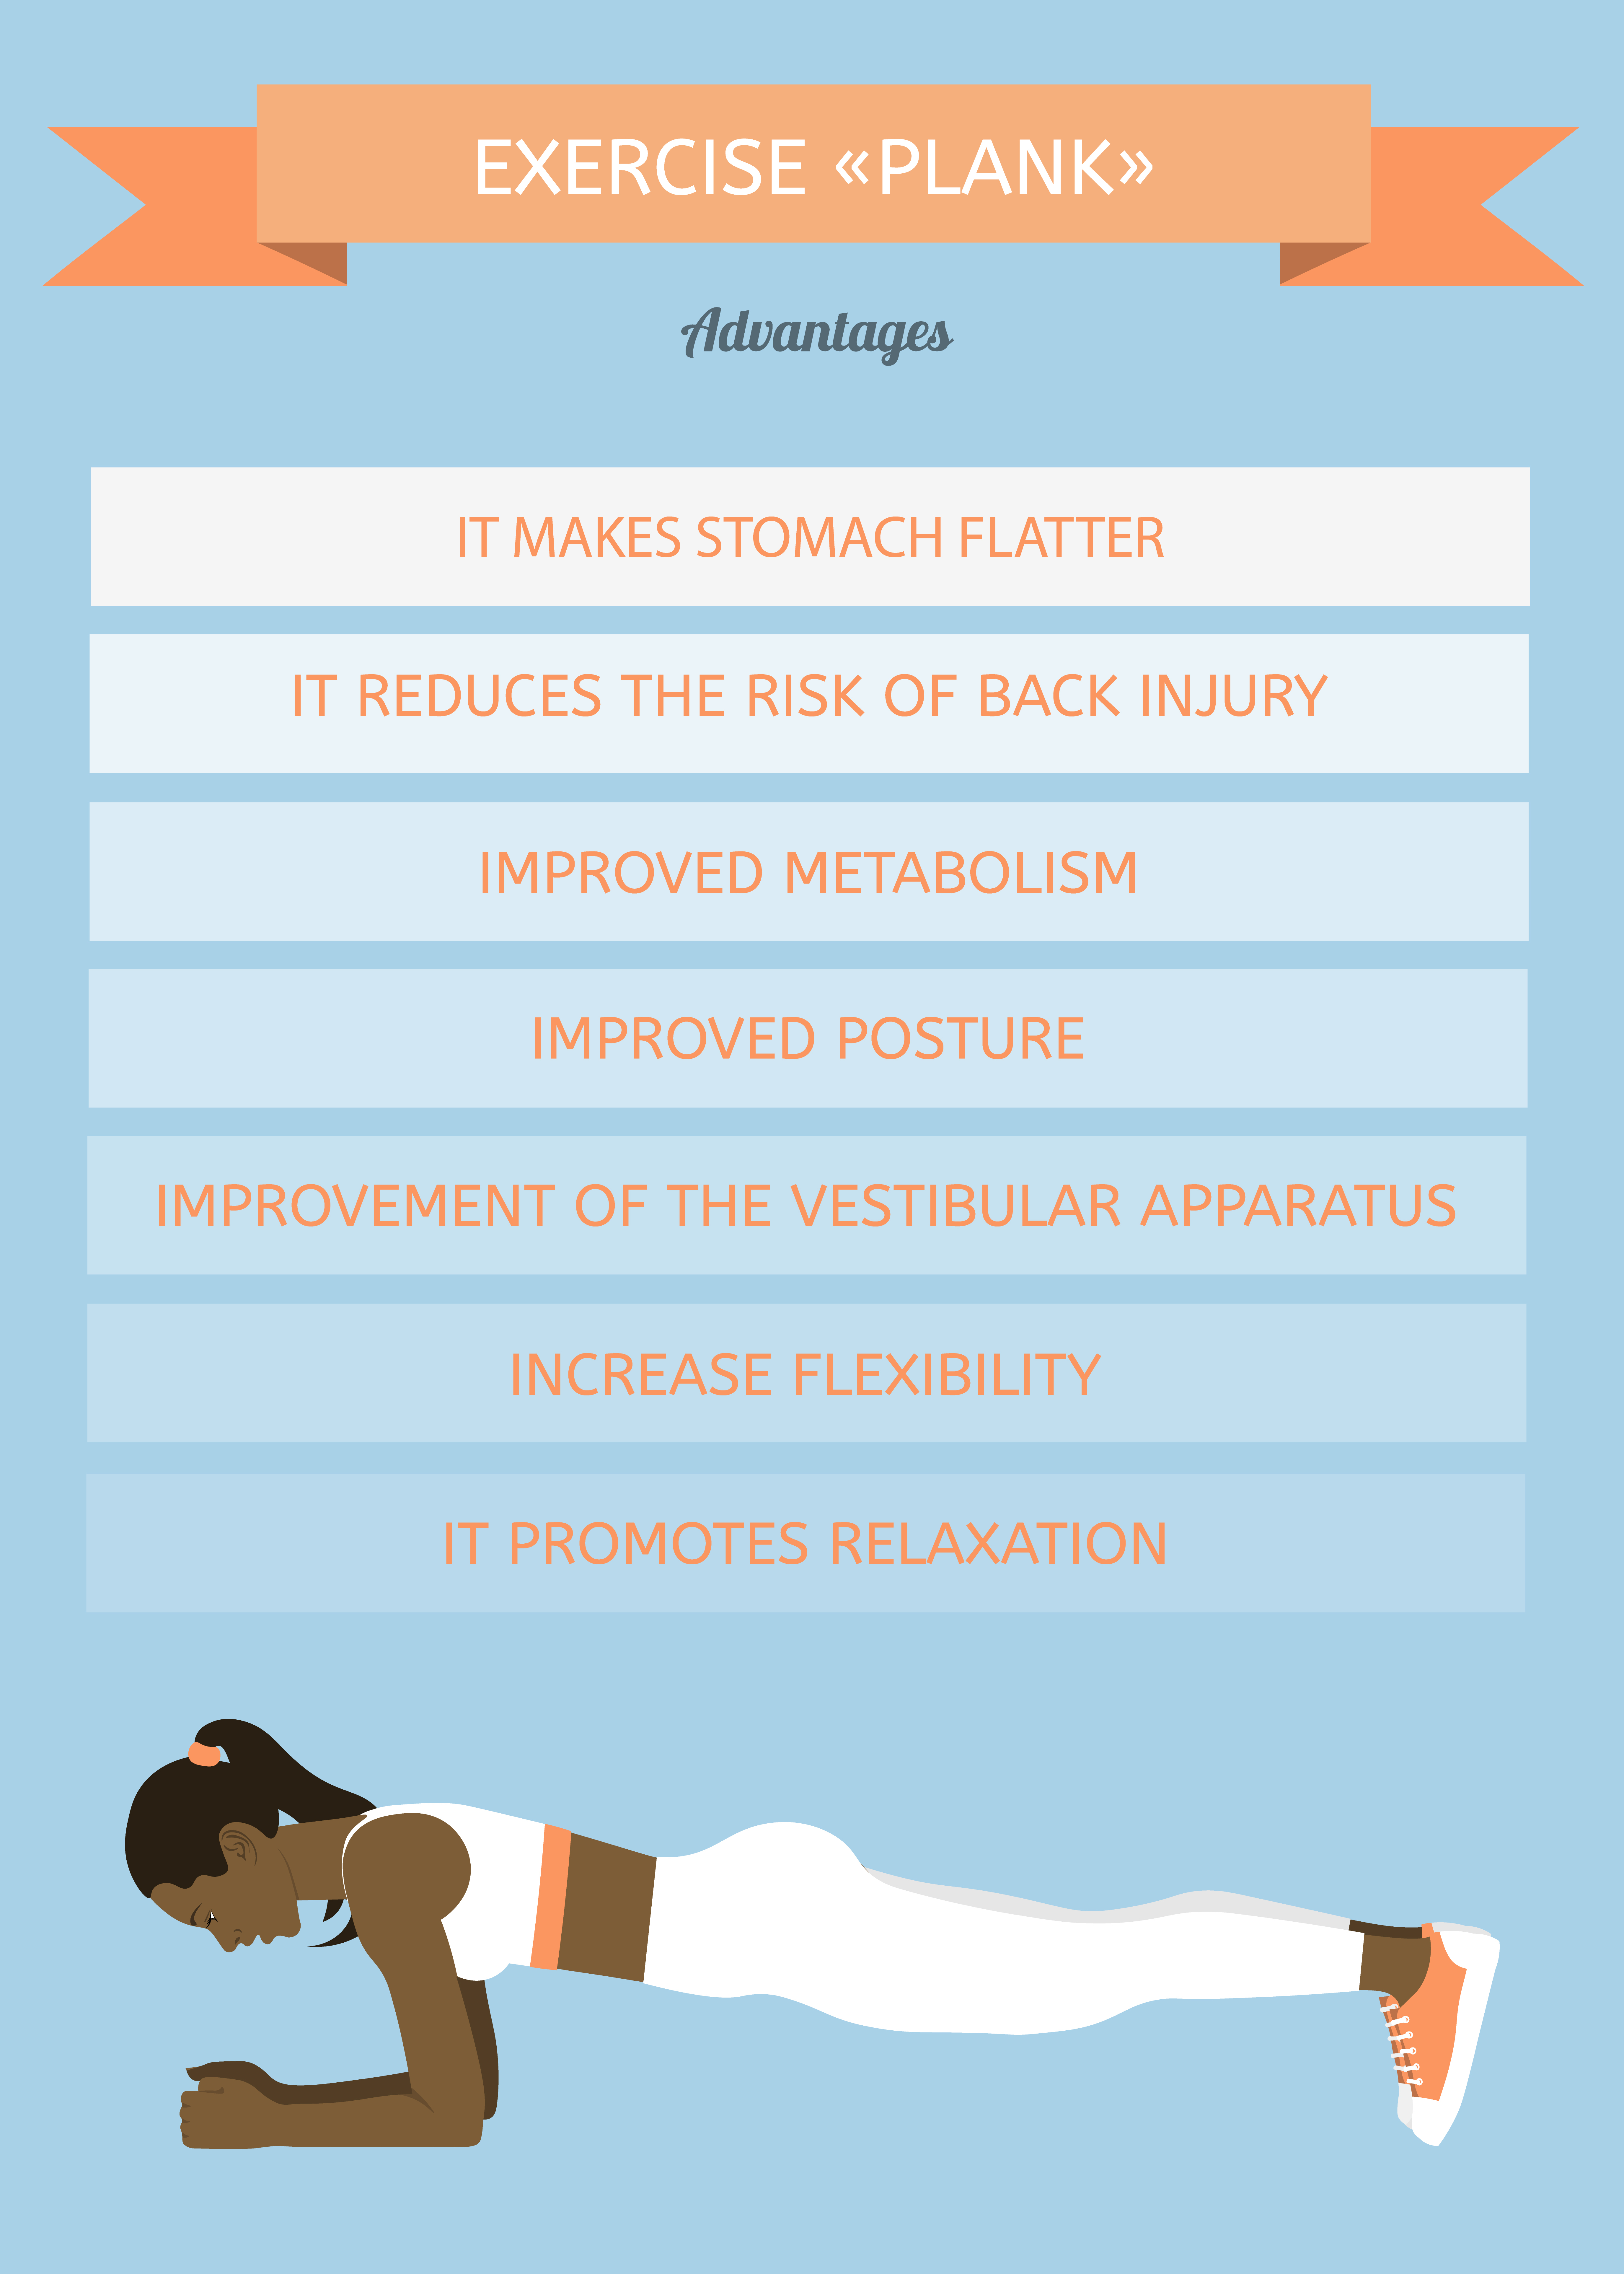 Why you should do the plank?